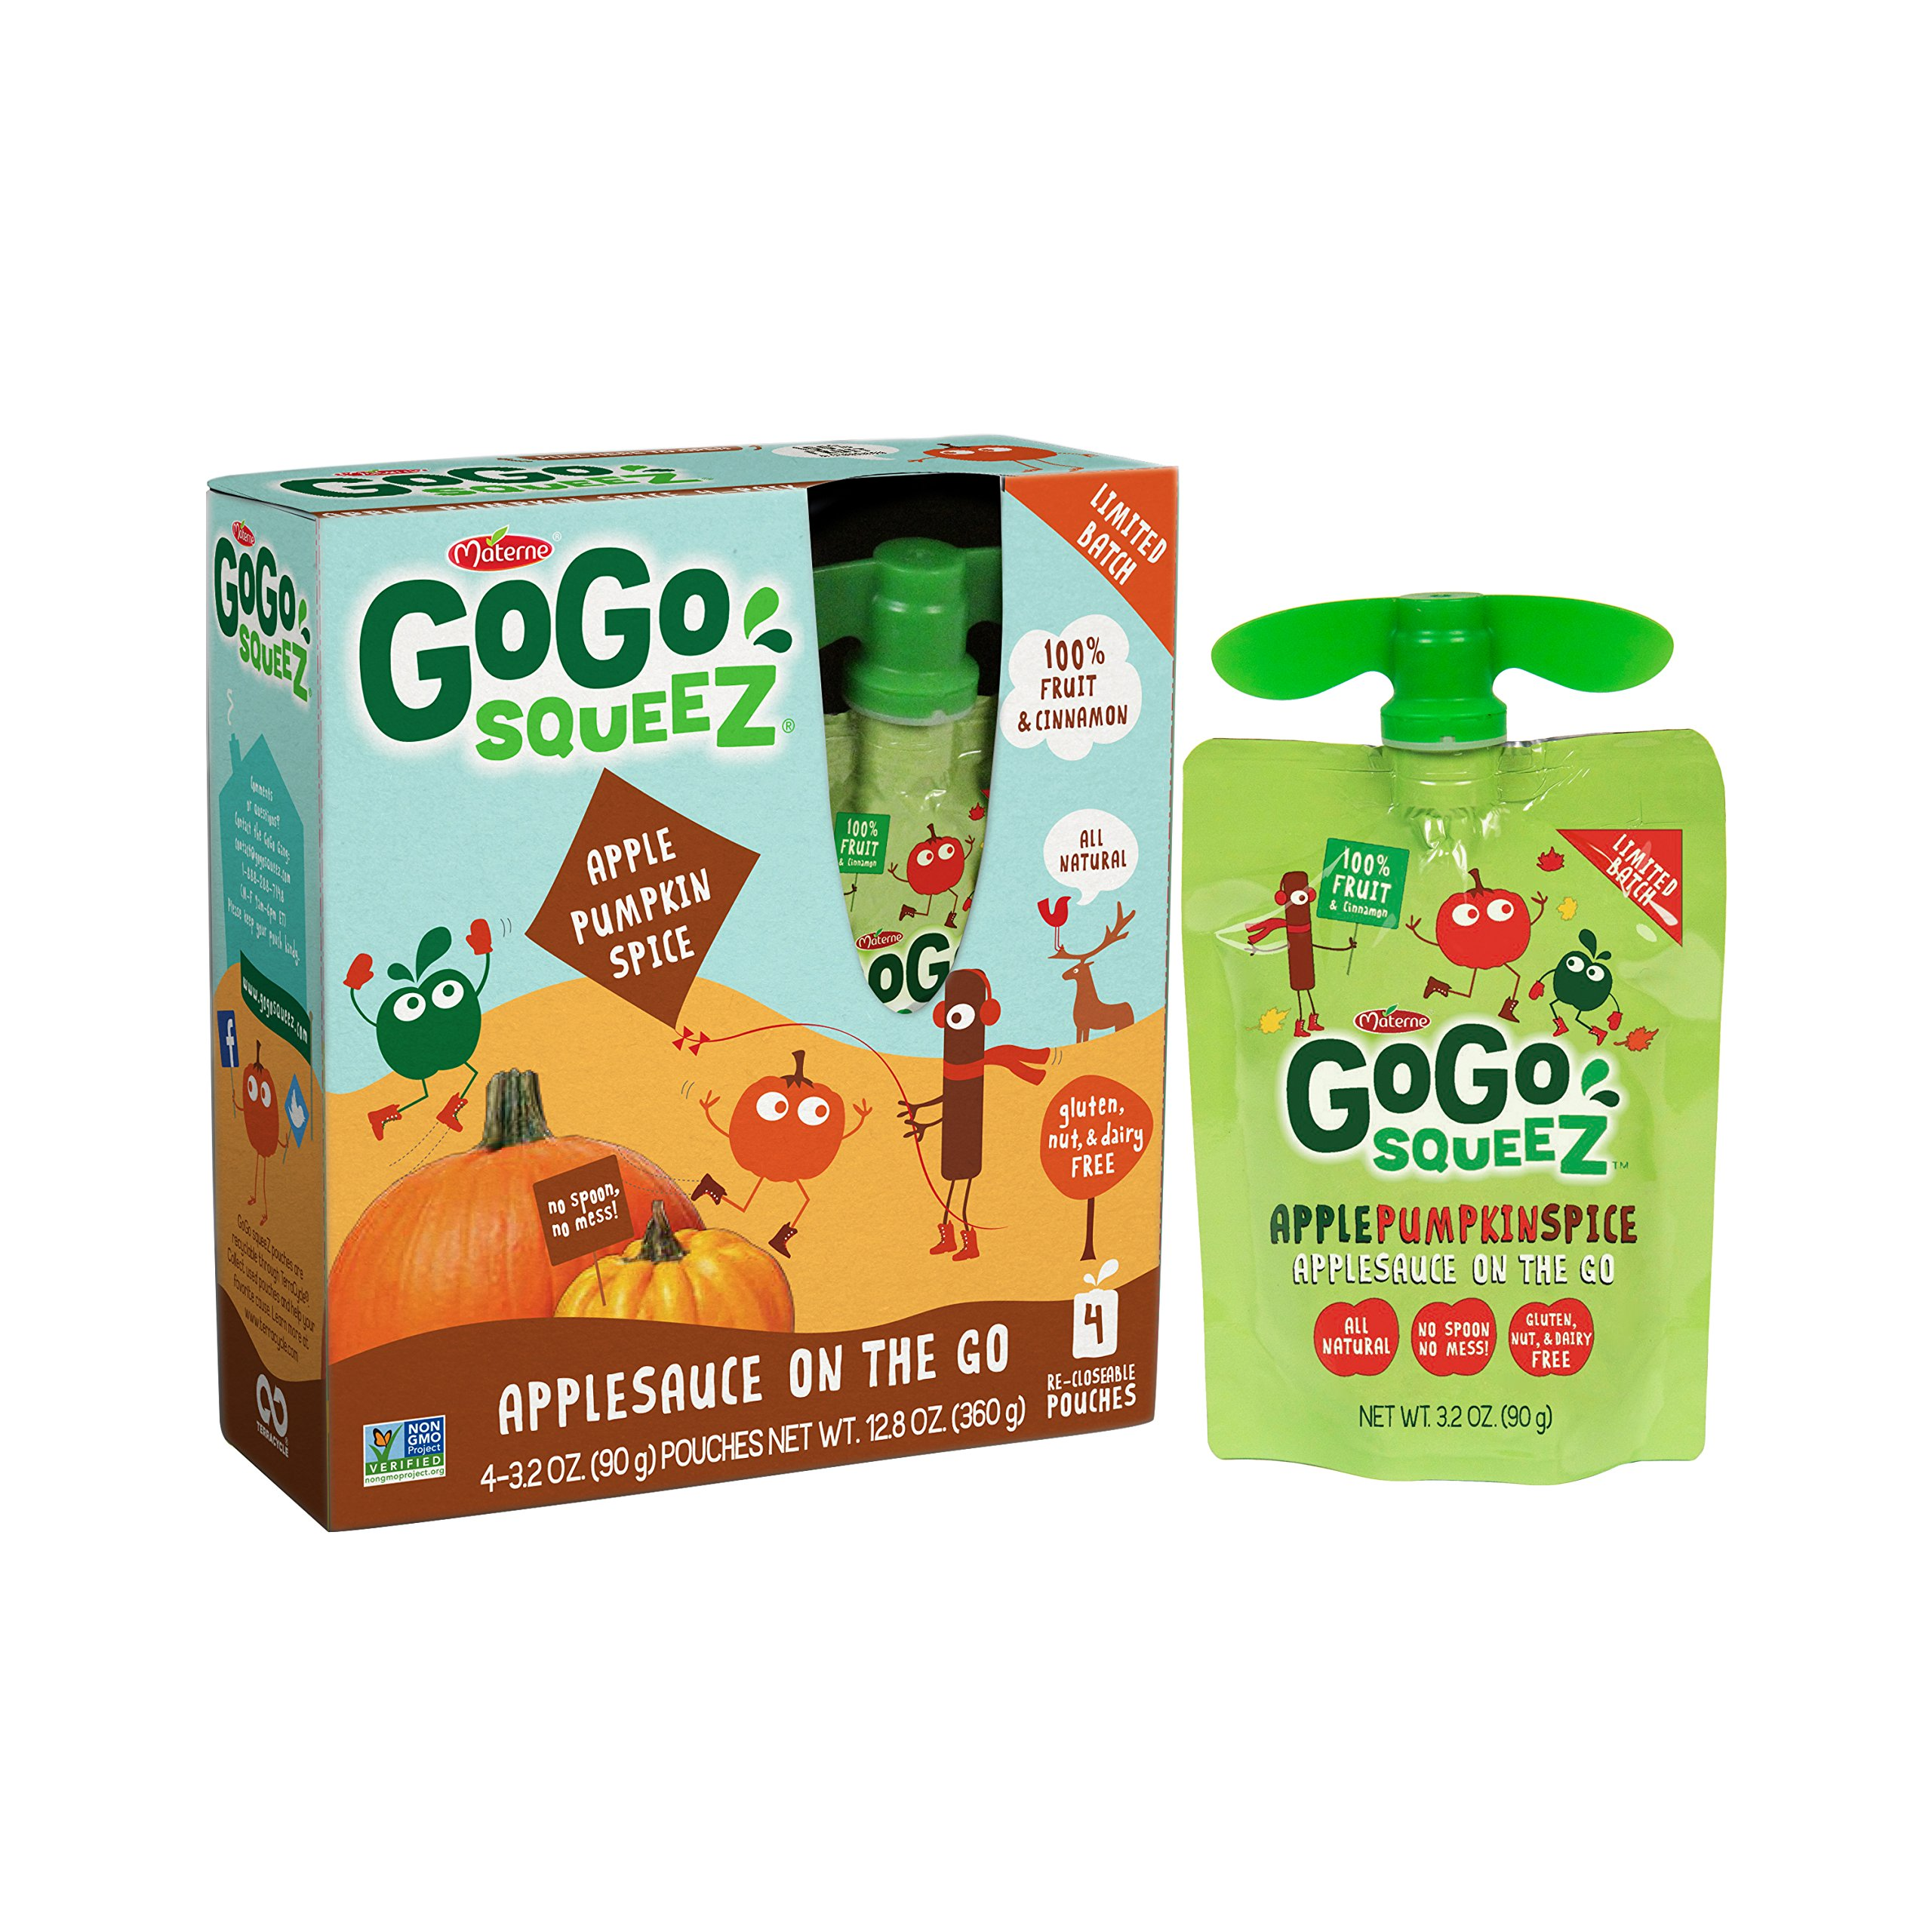 GoGo squeeZ Applesauce on the Go, Apple Pumpkin Spice, 3.2 Ounce Portable BPA-Free Pouches, Gluten-Free, 4 Total Pouches